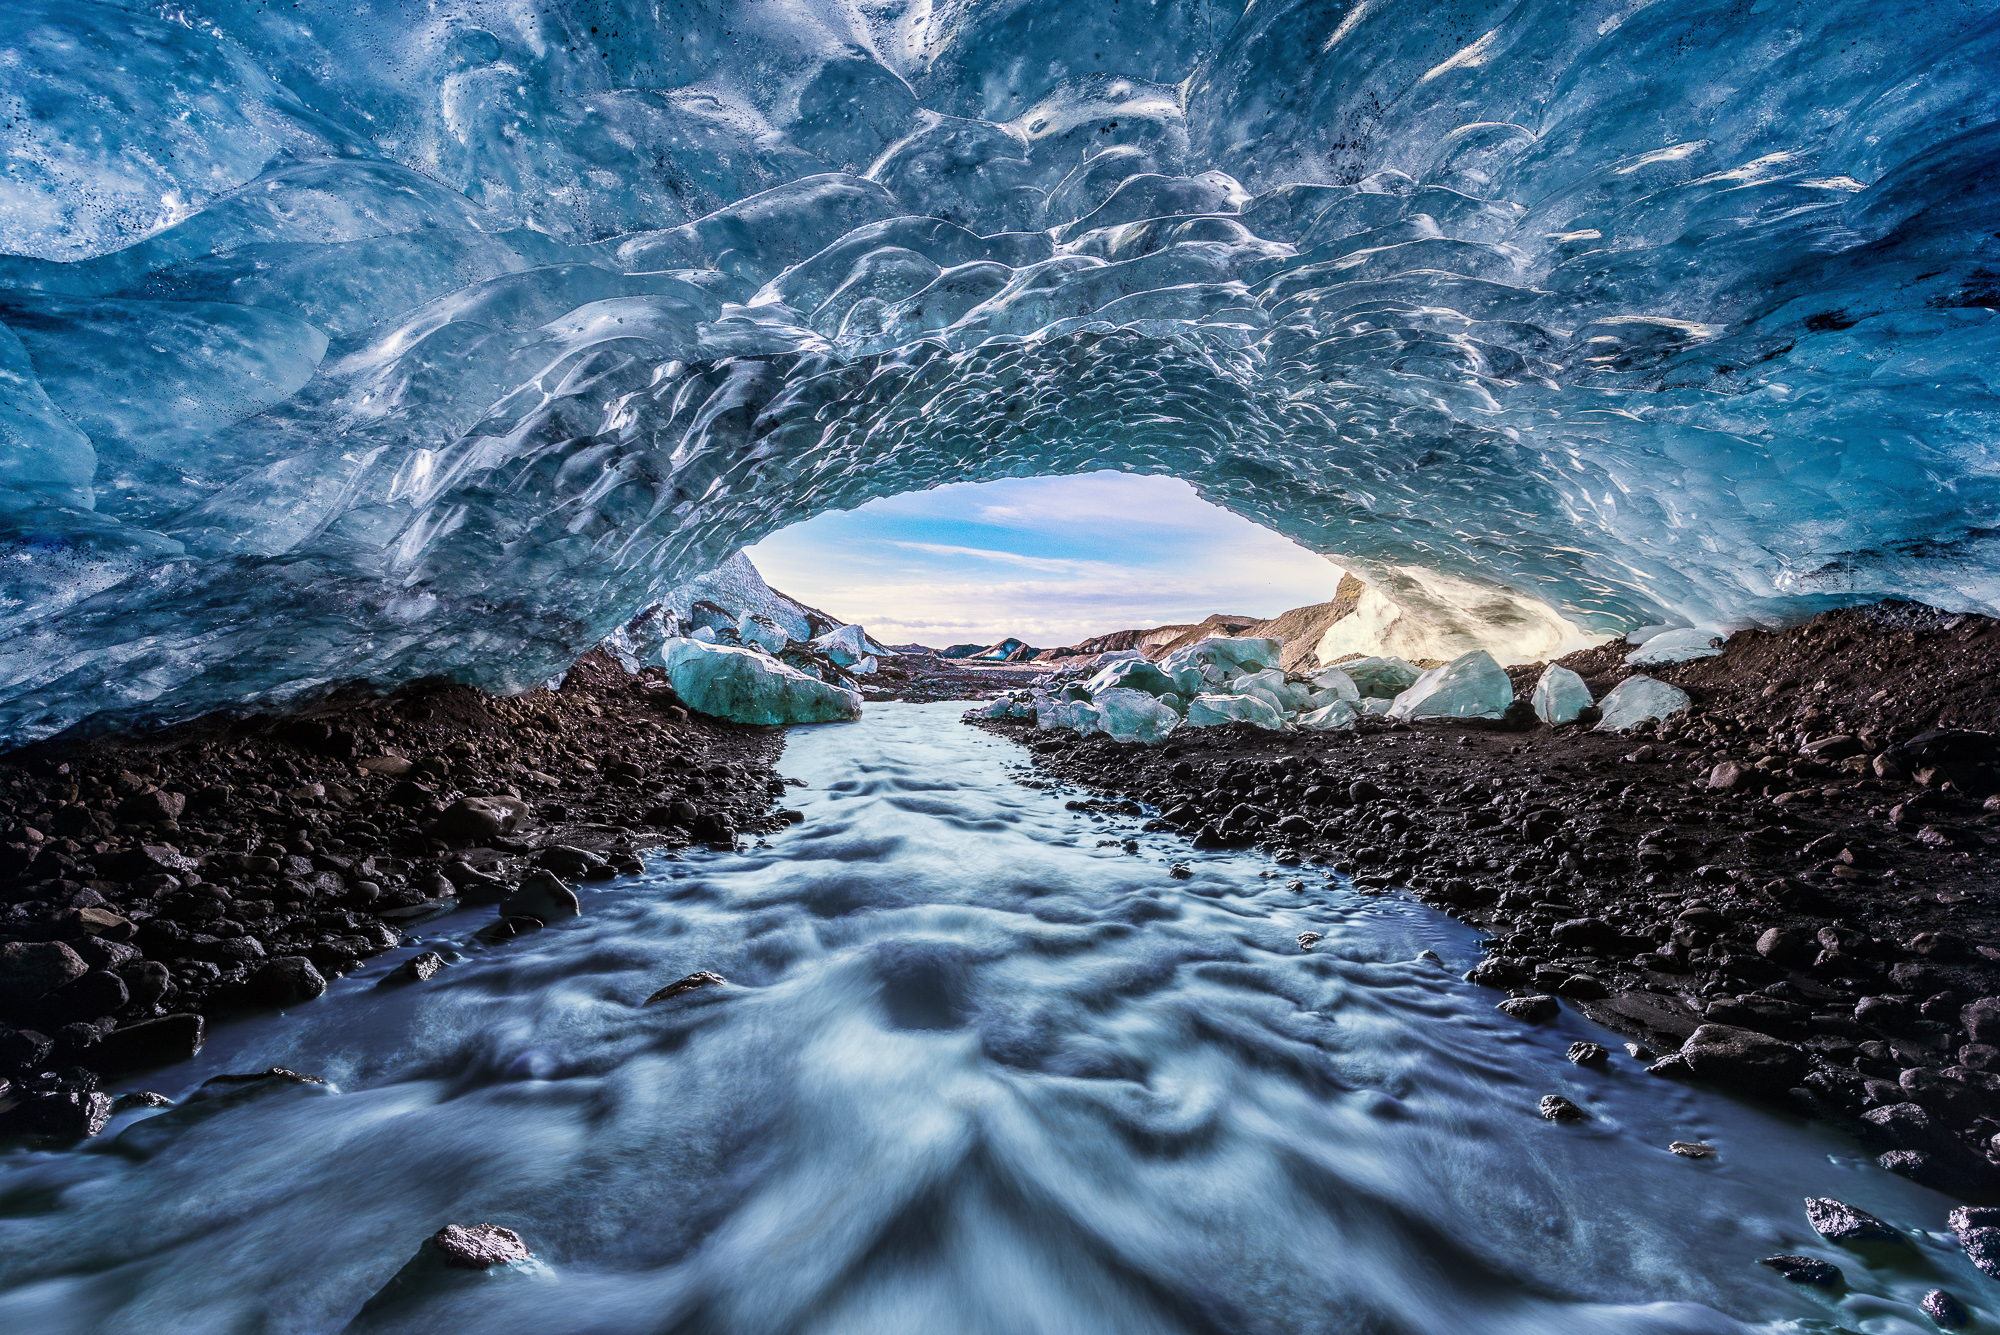 Water Flowing Out of Glacial Ice Cave, Iceland